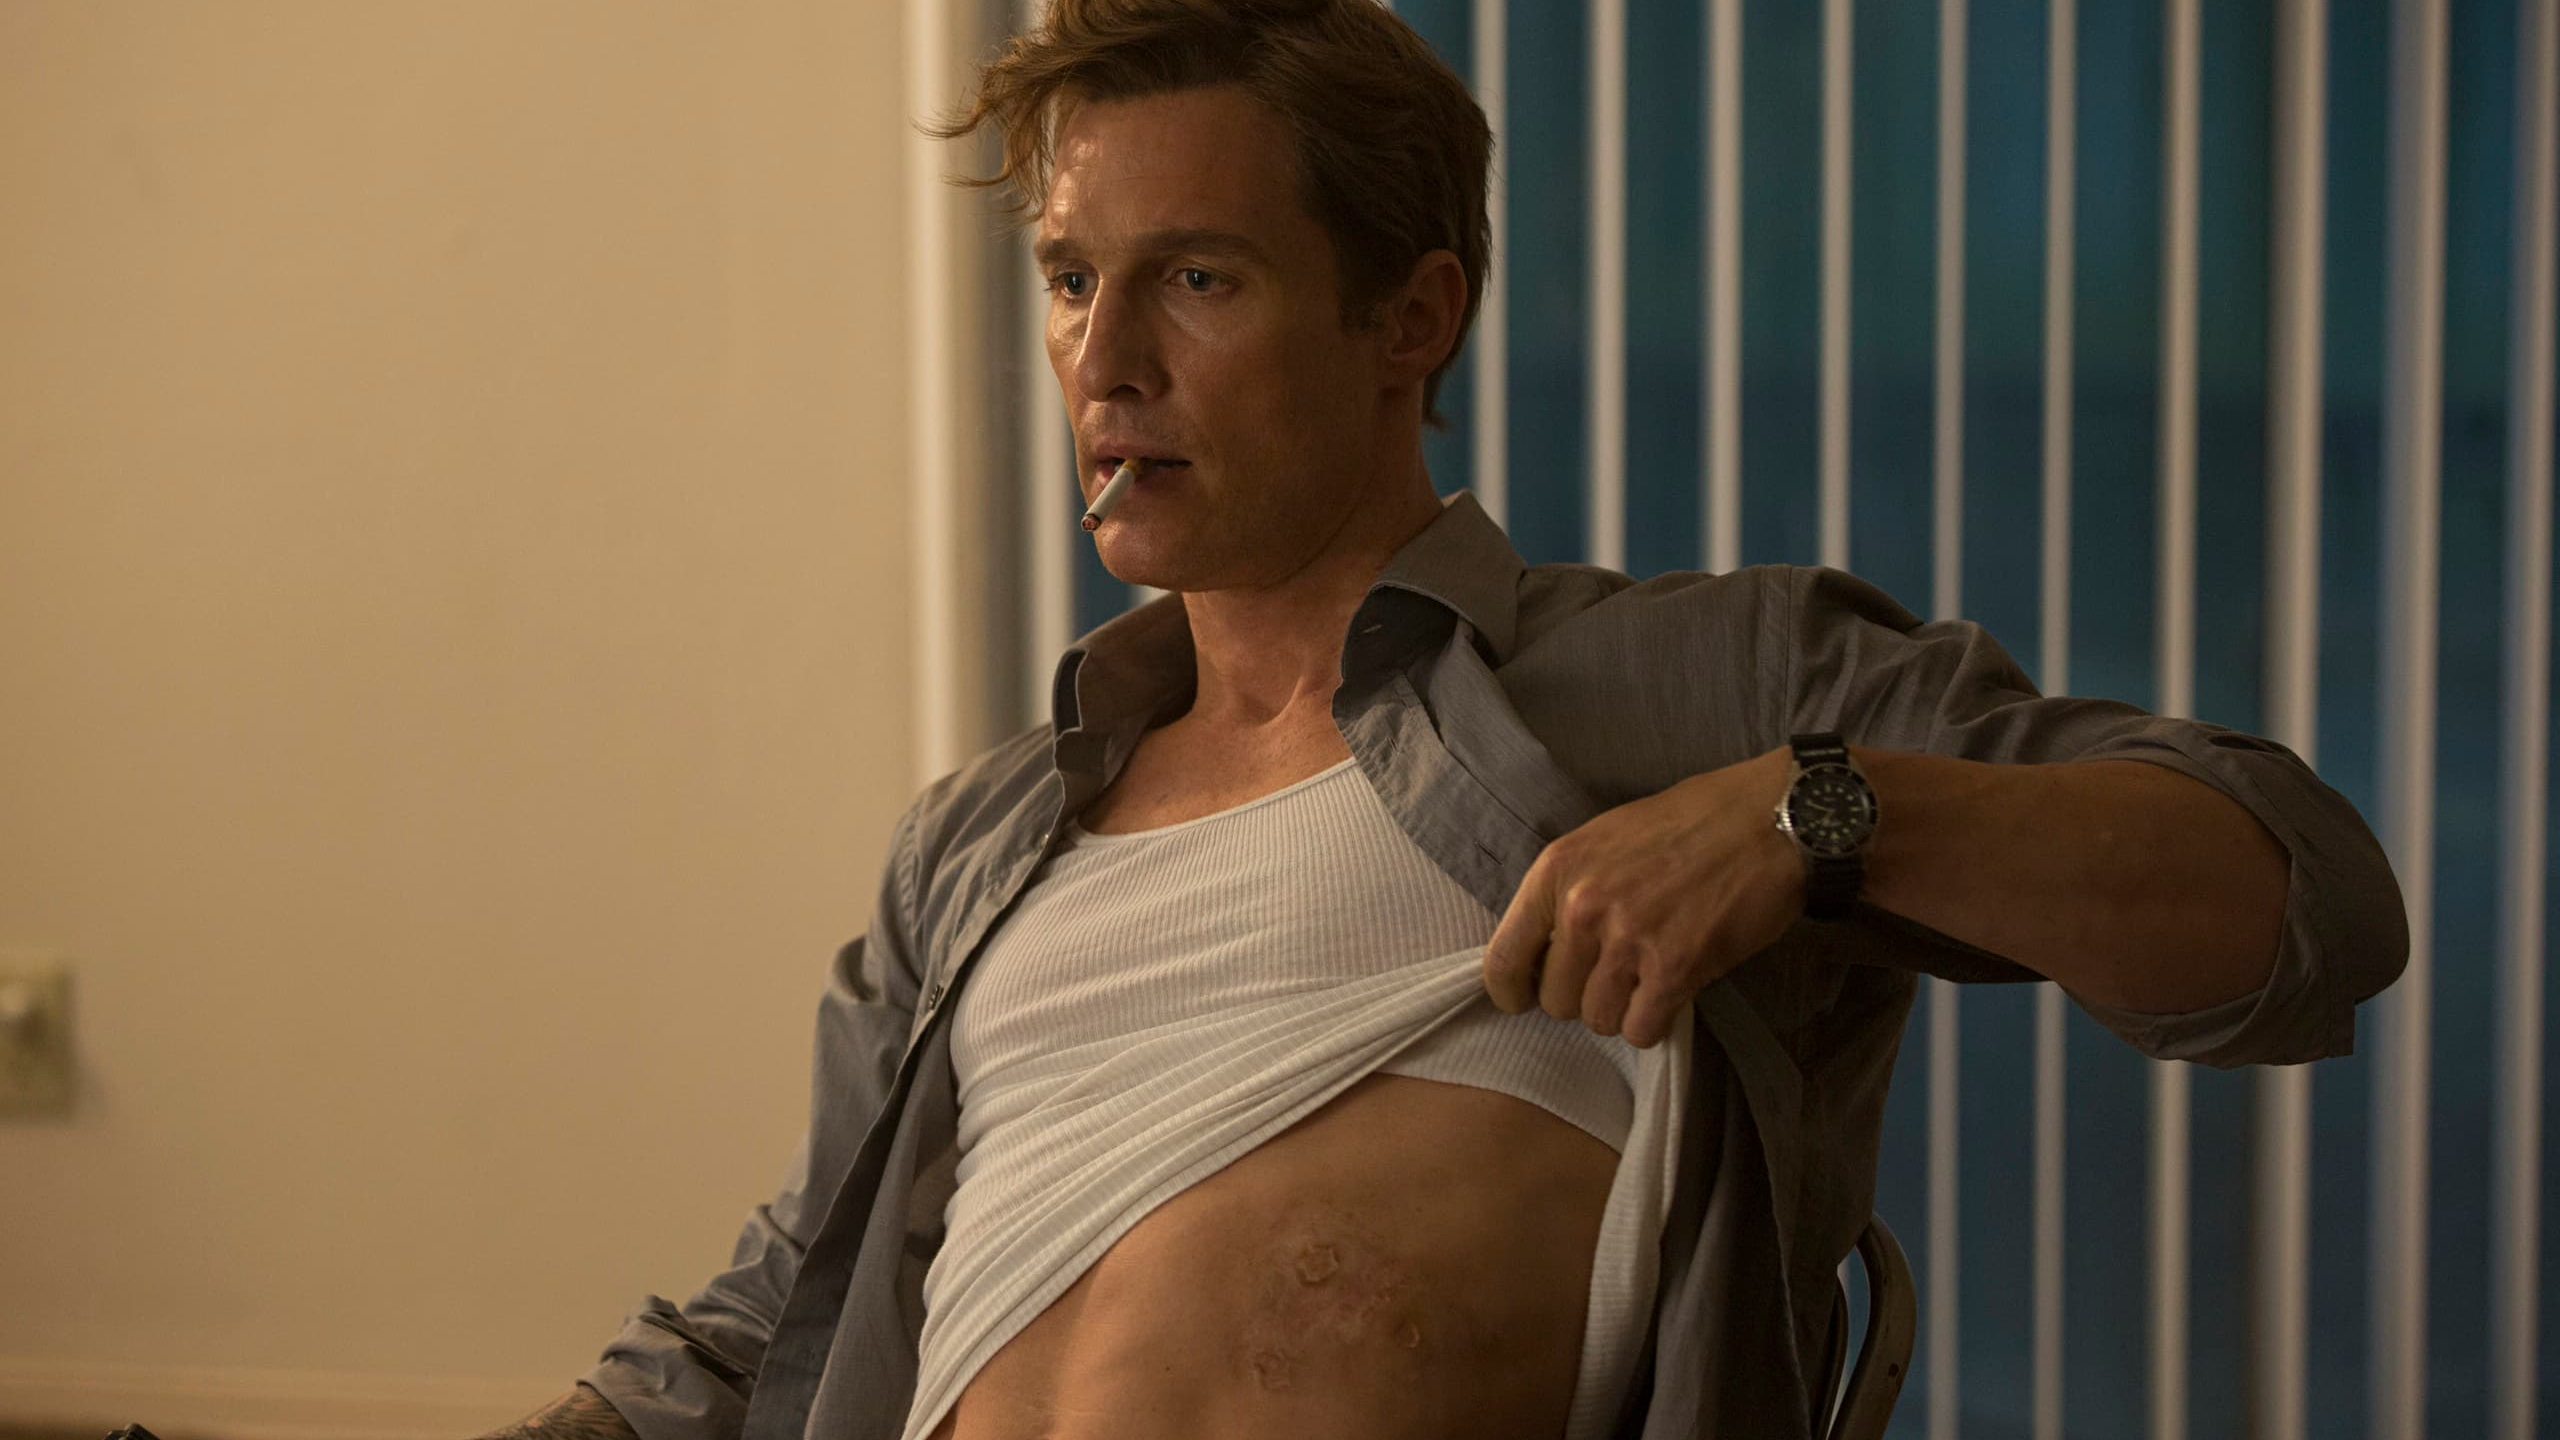 True Detective (2014), HBO, USA, 35mm, Detective Rust Cohle (Matthew McConaughey)